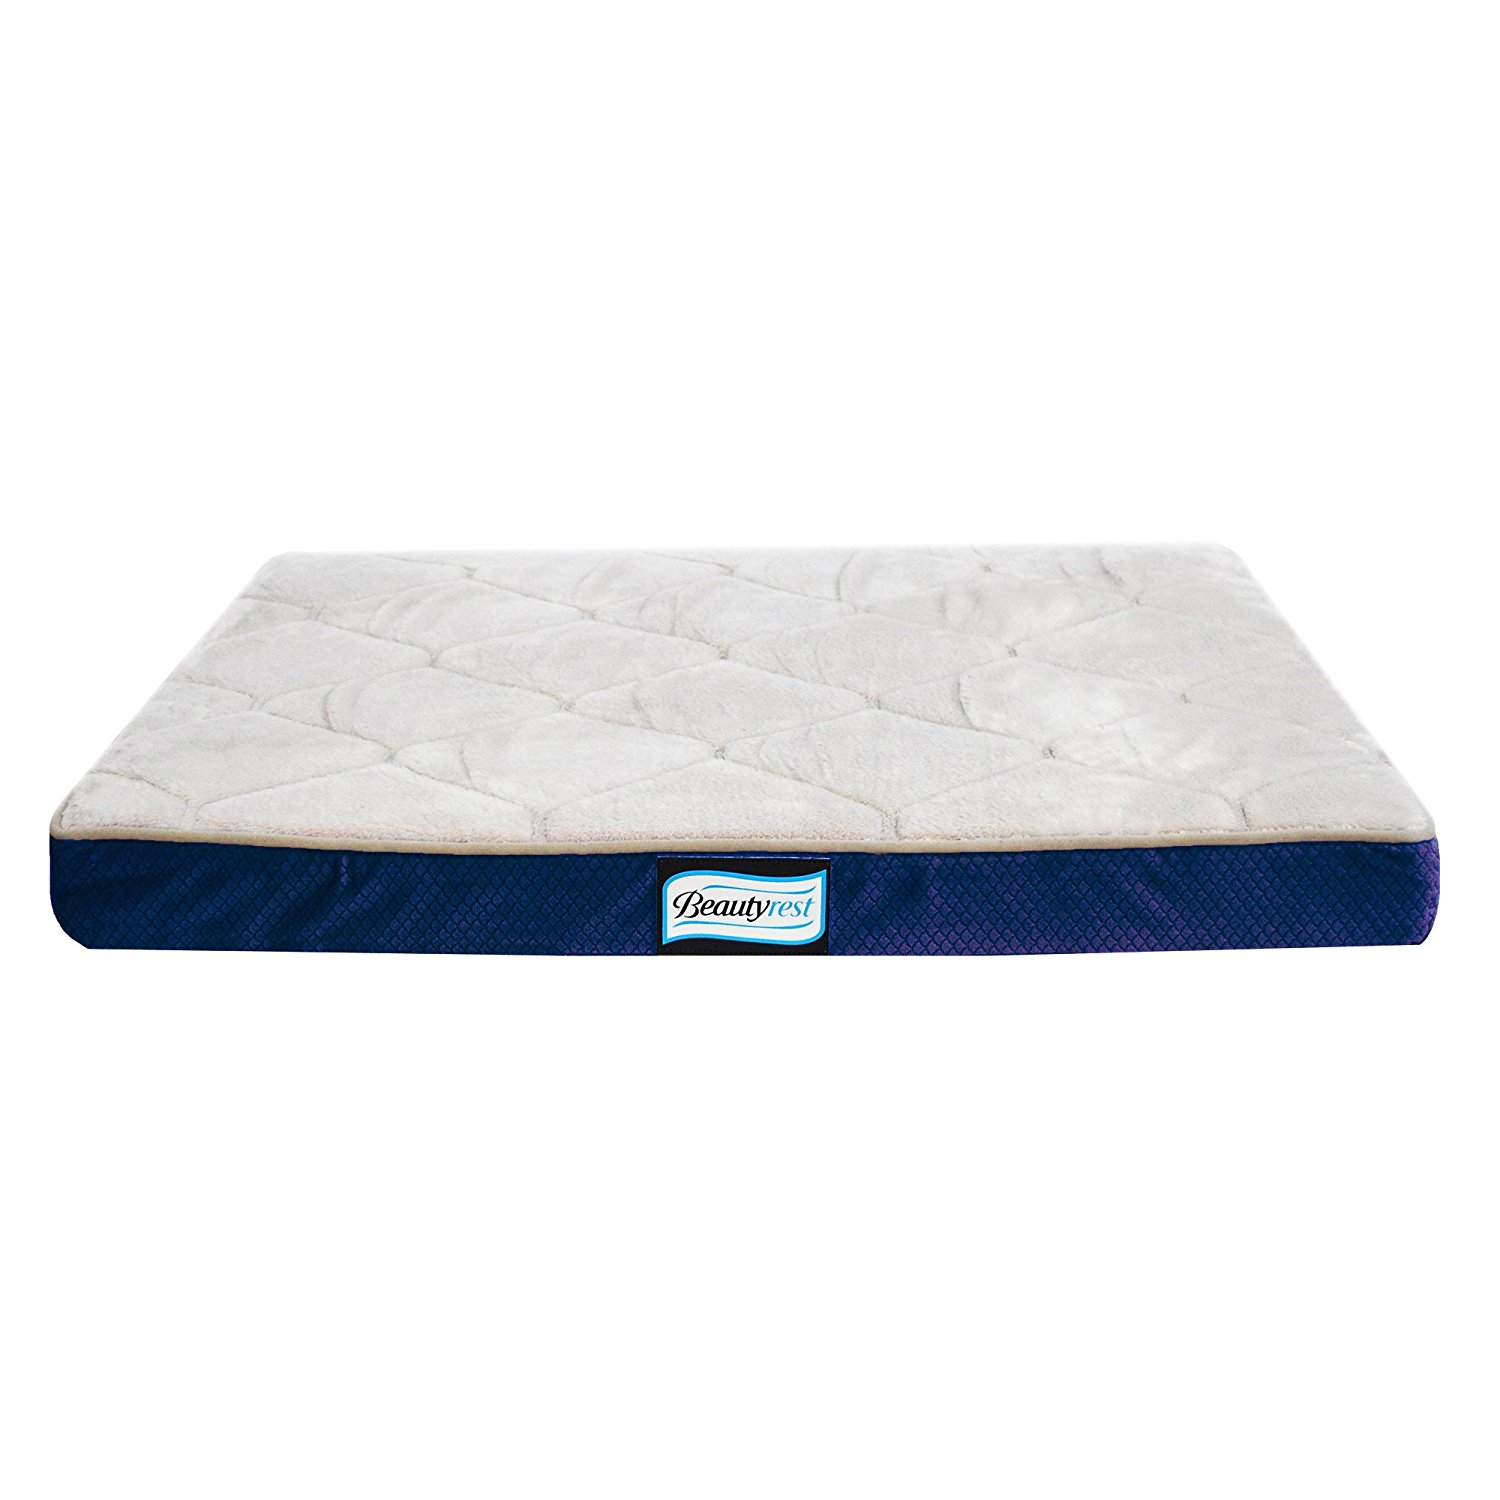 Simmons Beautyrest Thera Bed Orthopedic Memory Foam Dog Bed and Kennel   Crate Mat, Dual blend of orthopedic materials... by